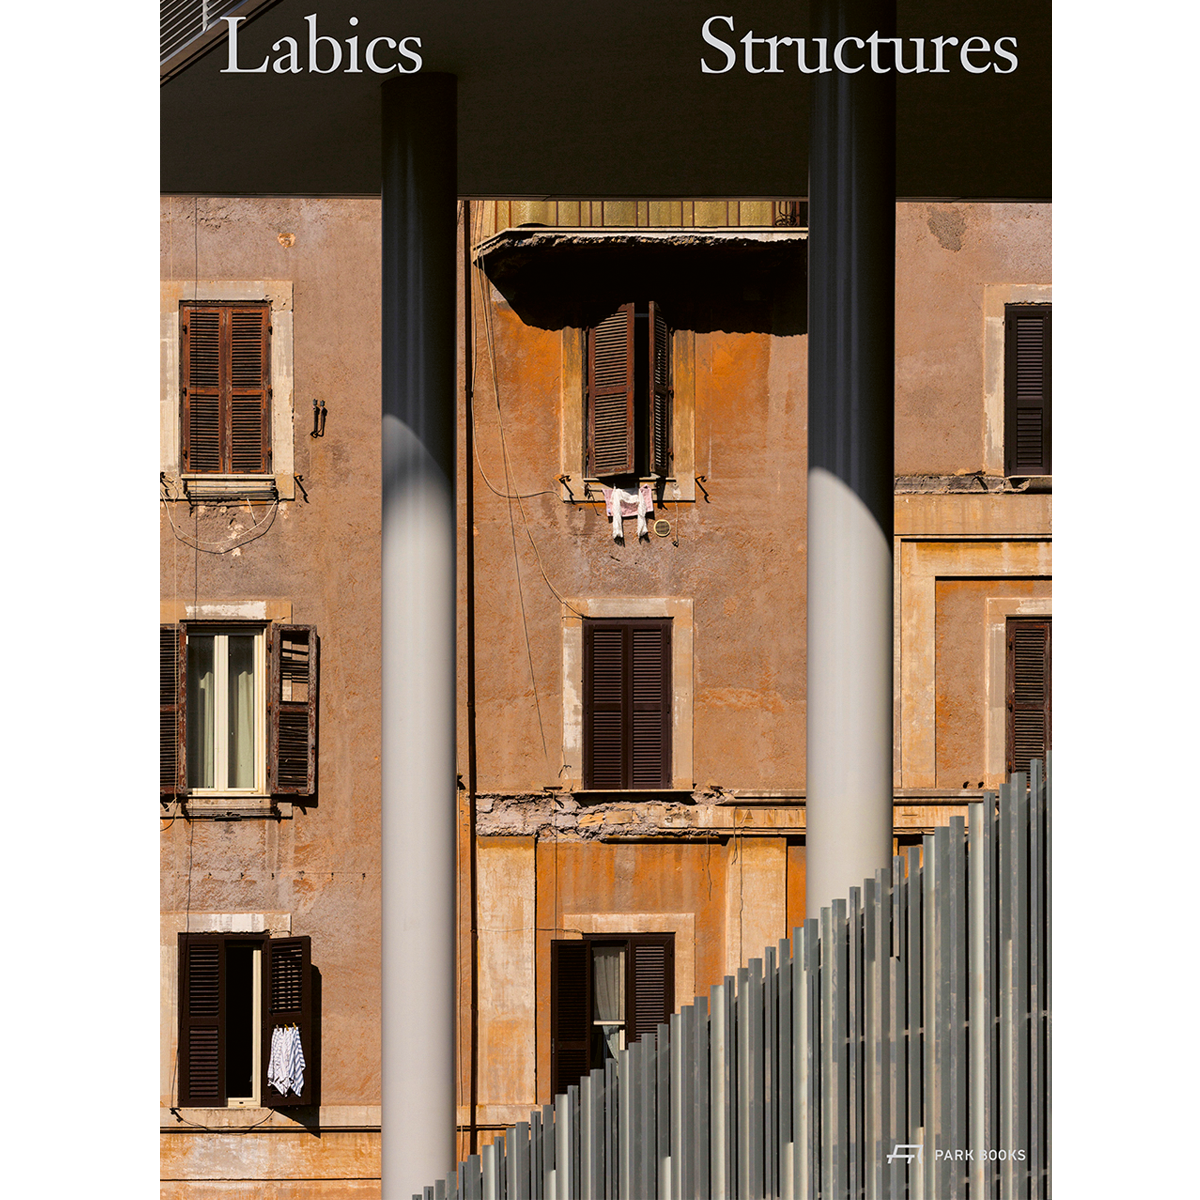 Labics – Structures: A System of Relations